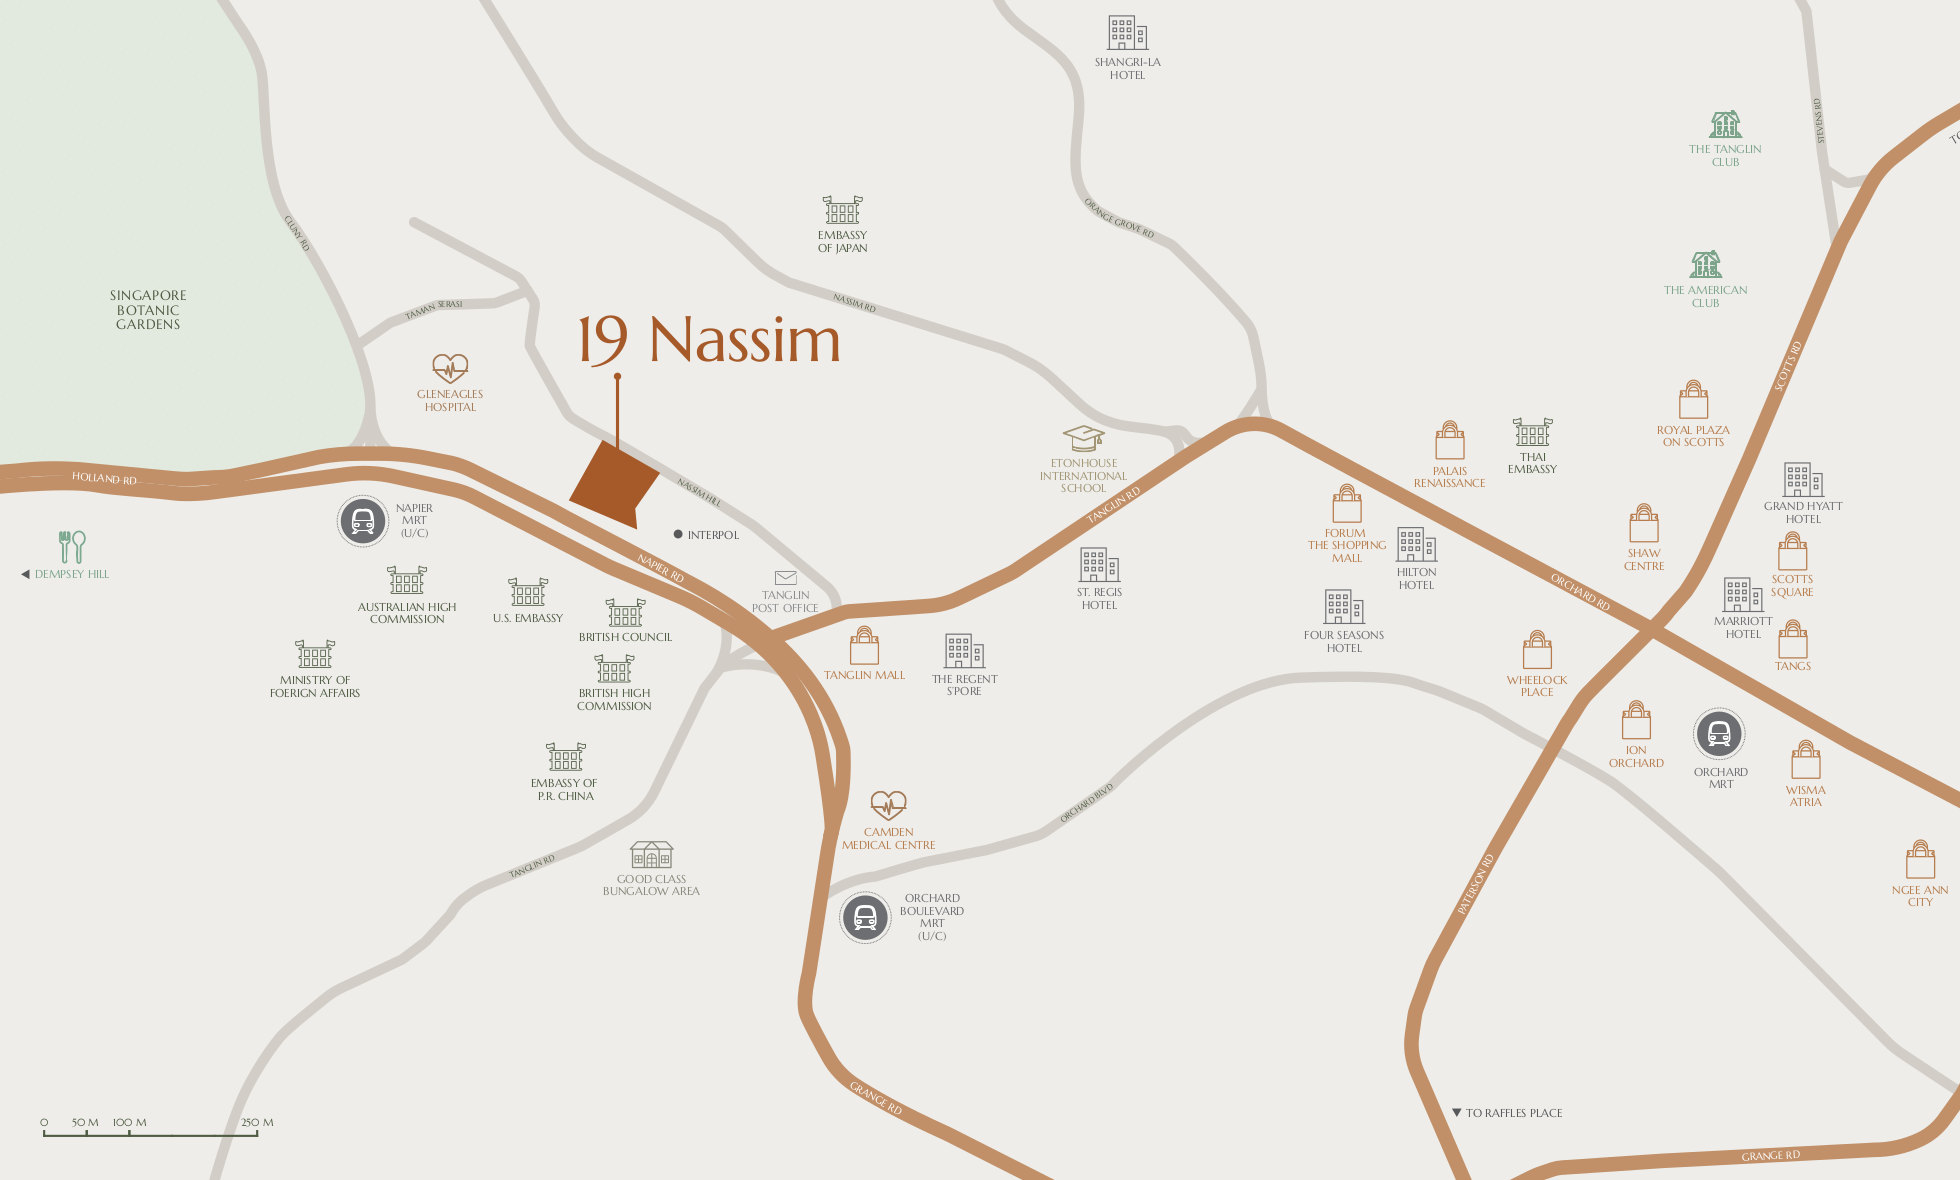 19 Nassim Location Amenities Map